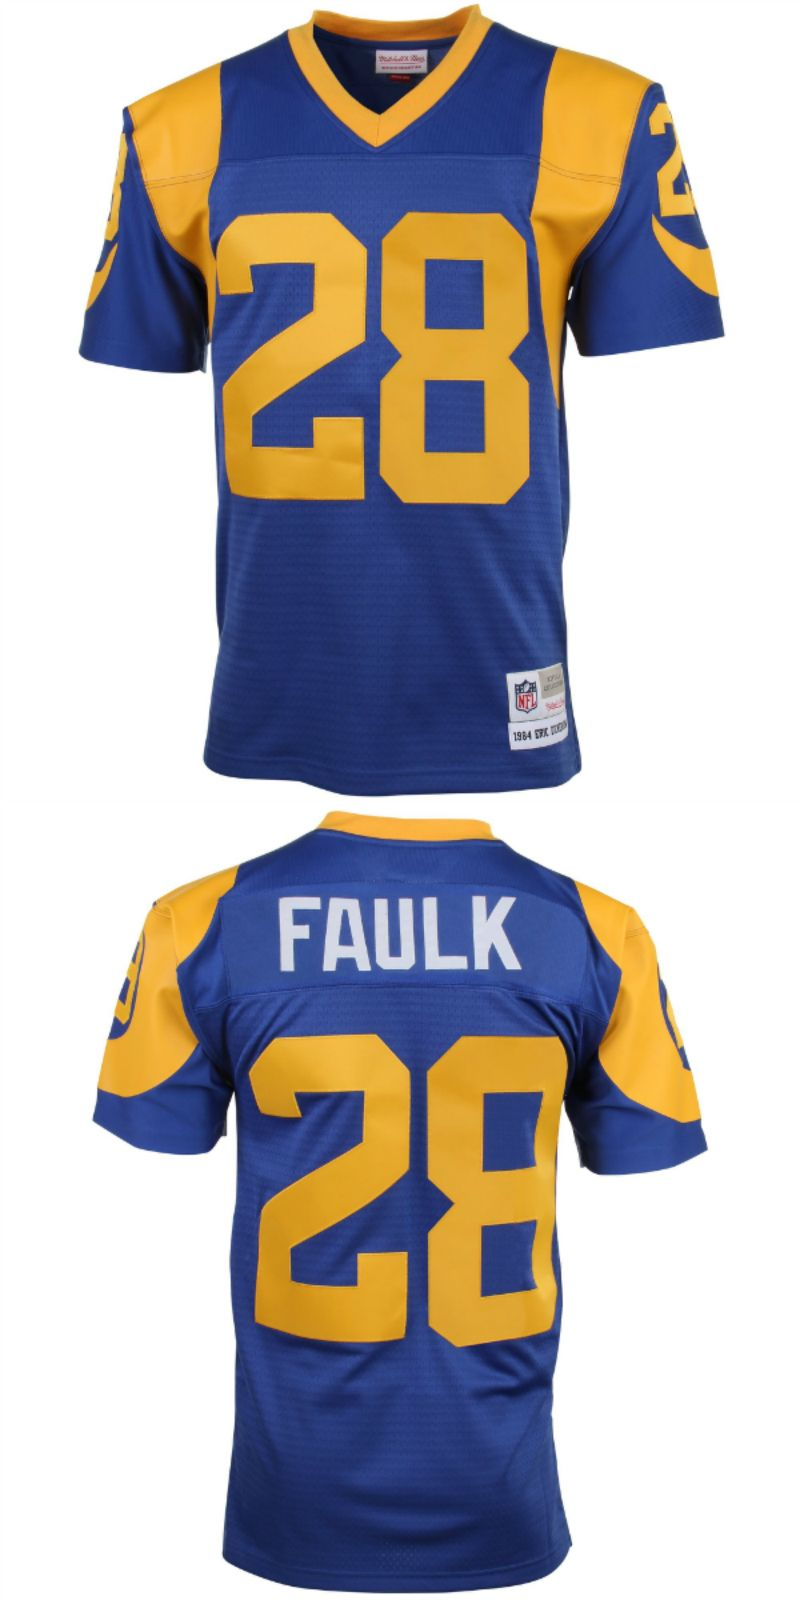 quality design 73db6 b095b UP TO 70% OFF. Marshall Faulk St. Louis Rams Mitchell & Ness ...